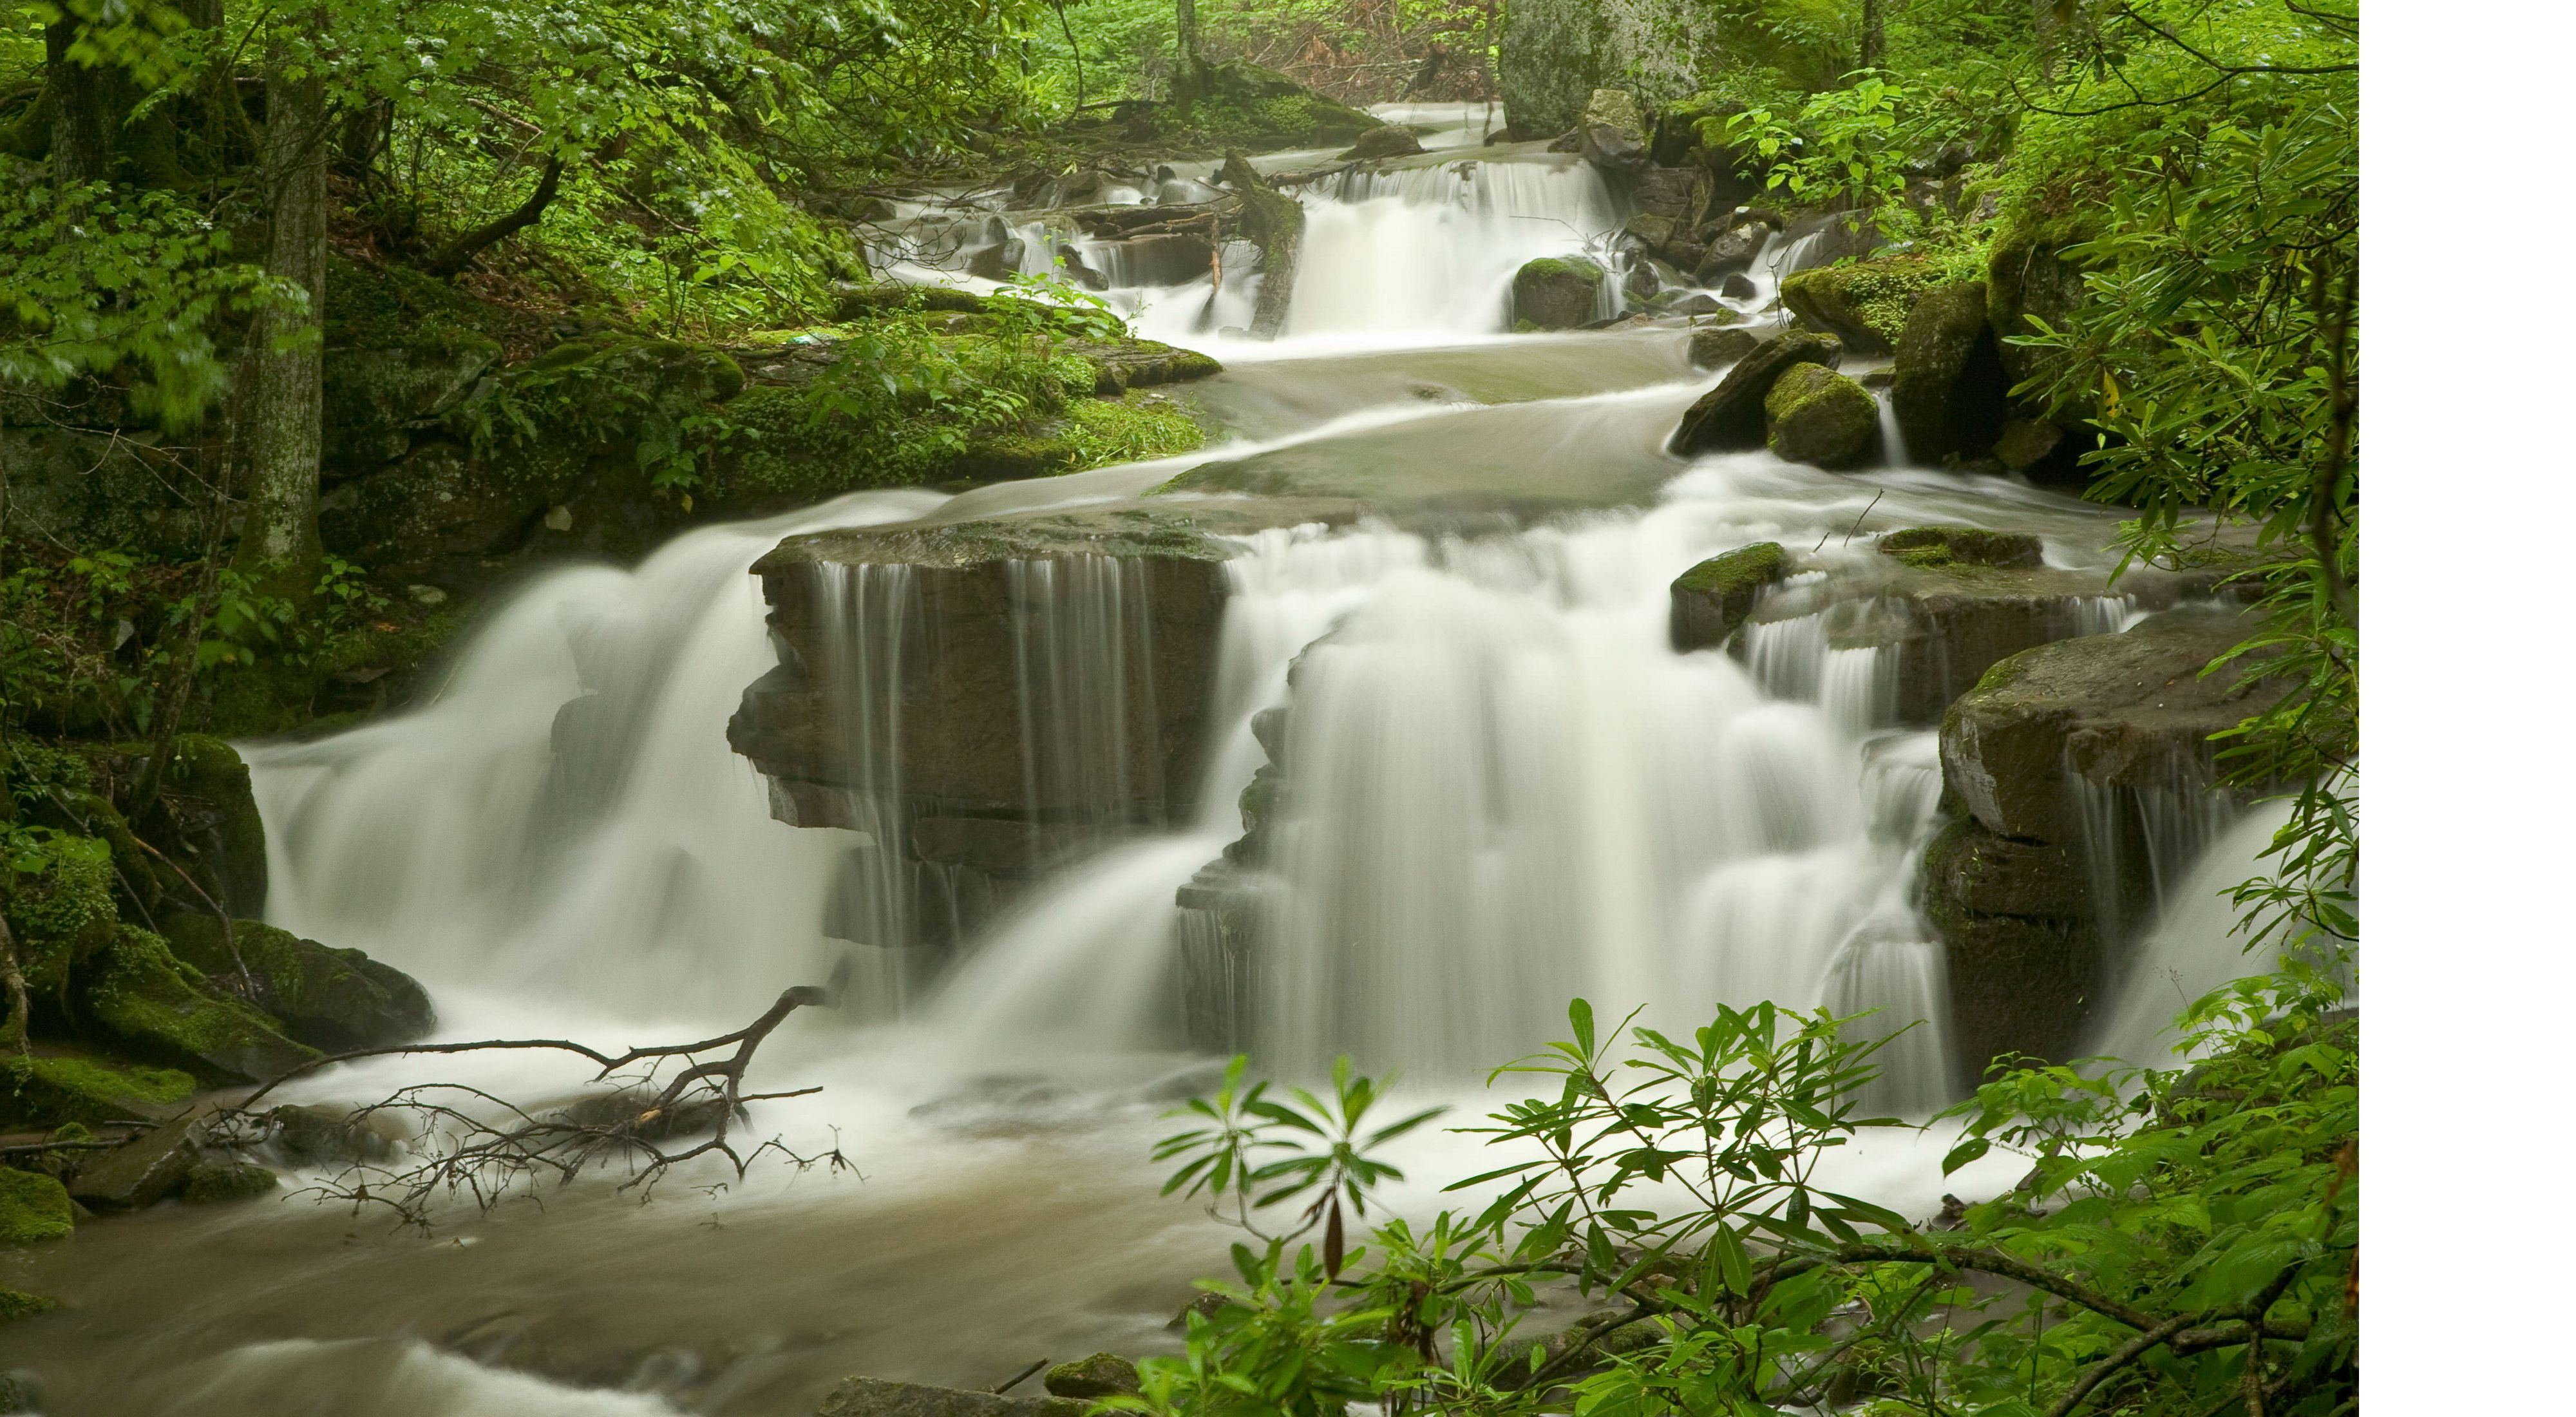 is one of many small streams in the Monongahela National Forest in West Virginia.